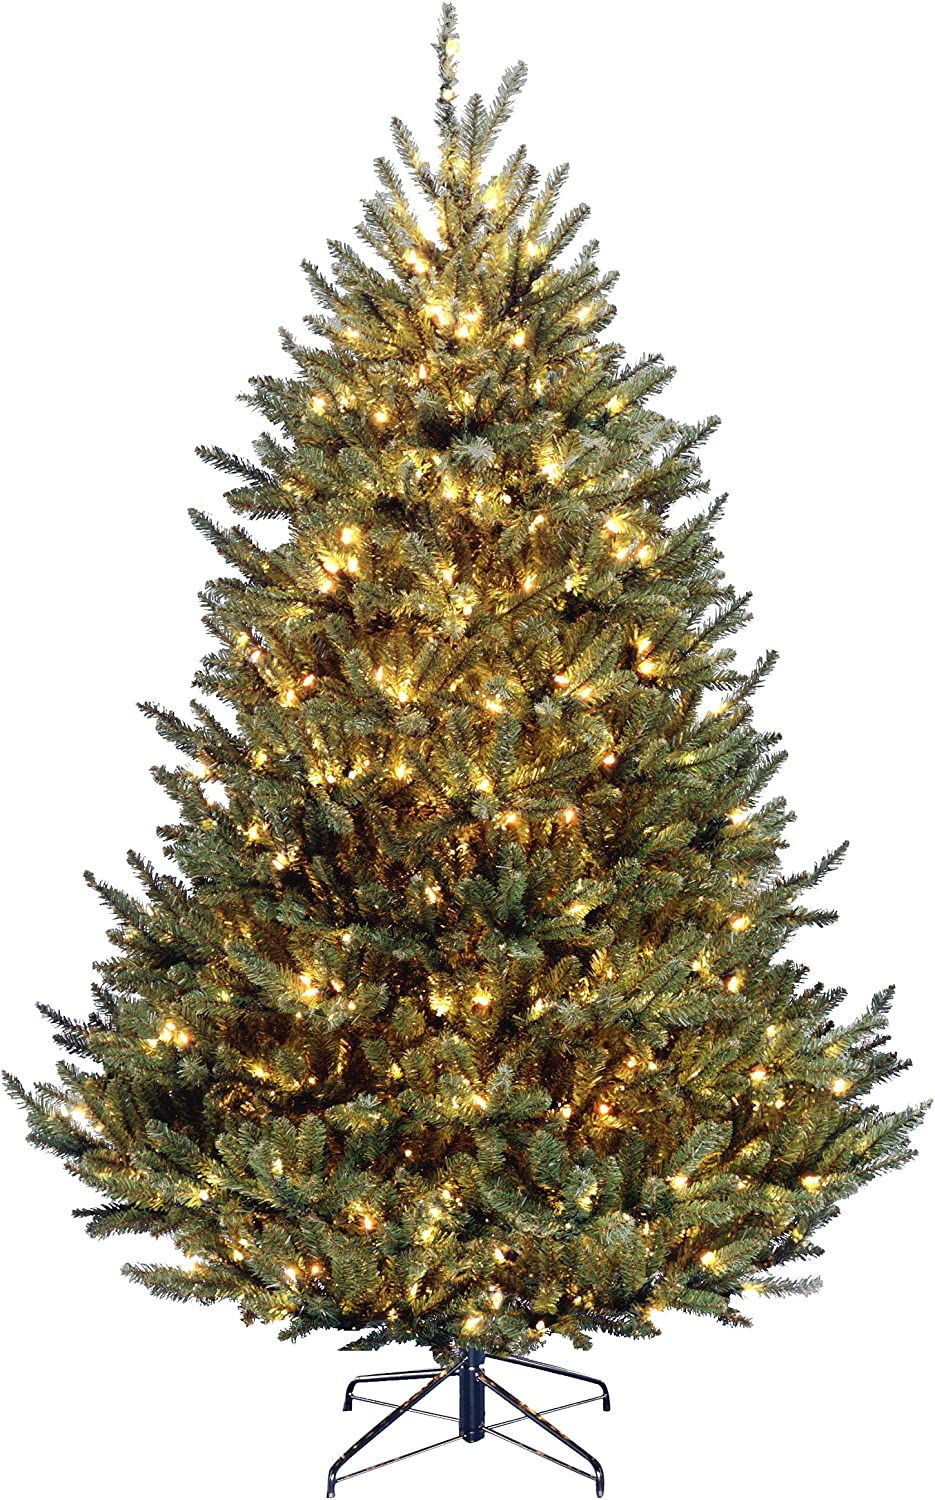 National Tree Company Outdoor Christmas Decorations  from images-na.ssl-images-amazon.com